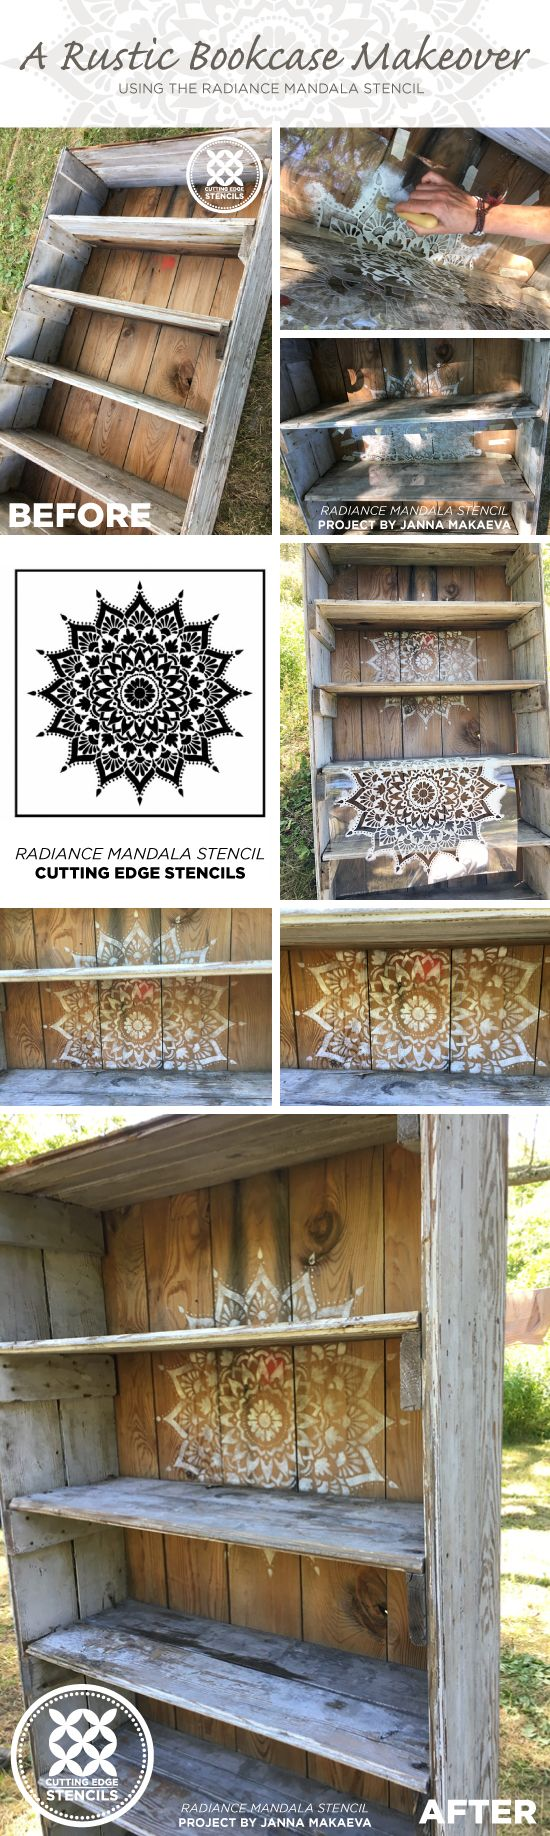 Learn how to stencil a rustic bookcase using the Radiance Mandala Stencil from Cutting Edge Stencils. http://www.cuttingedgestencils.com/radiance-mandala-stencil-yoga-mandala-stencils-decal.html